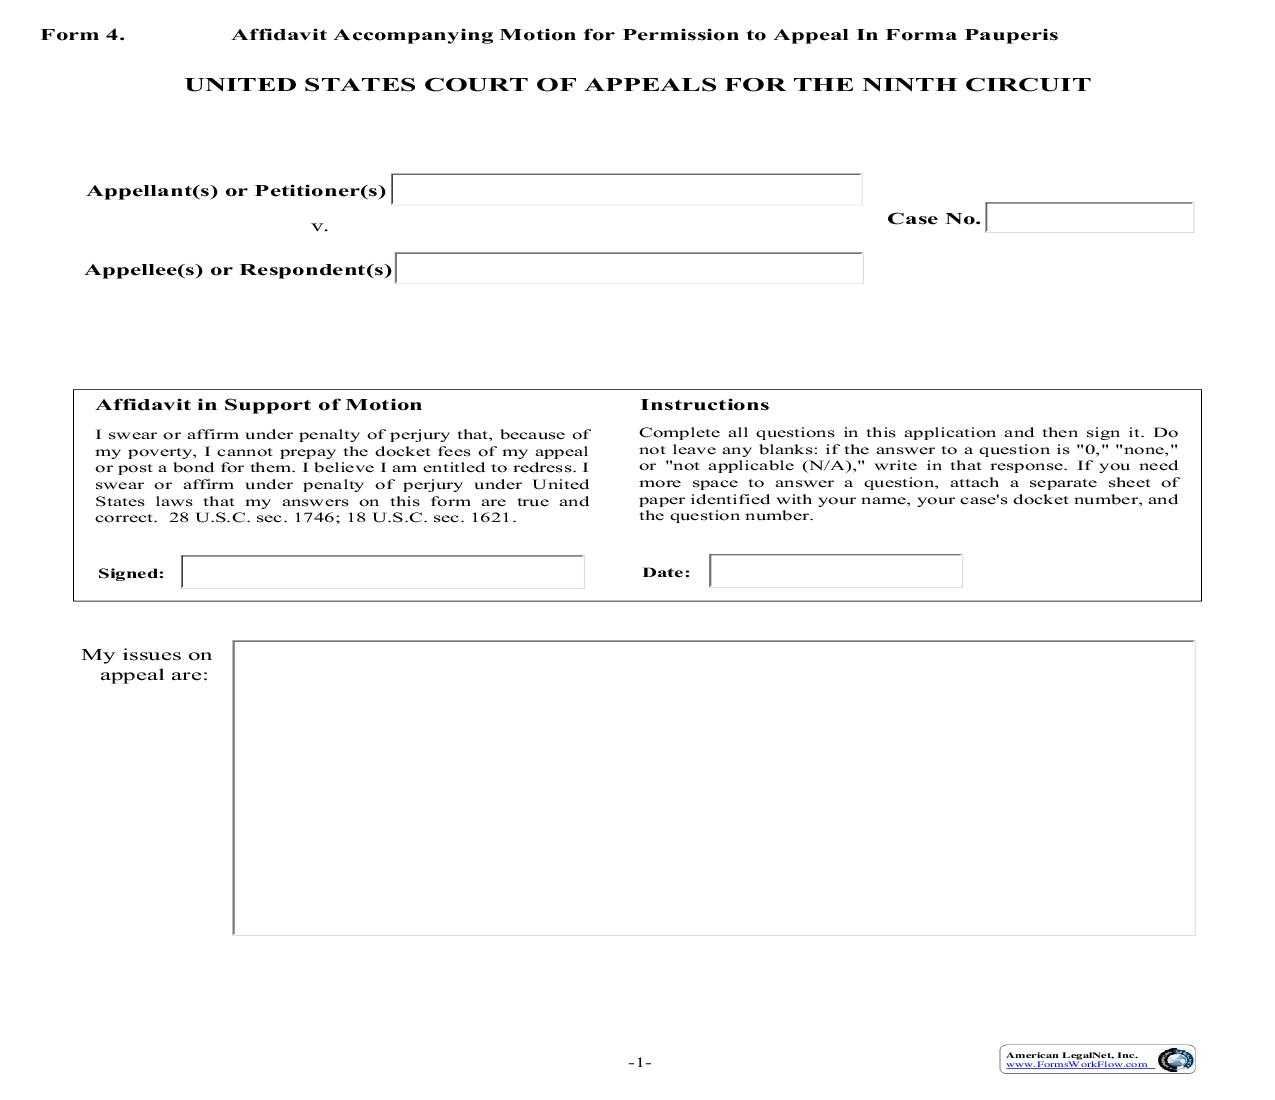 Form 4 Affidavit Accompanying Motion For Permission To Appeal In Forma Pauperis {4}   Pdf Fpdf Doc Docx   Official Federal Forms